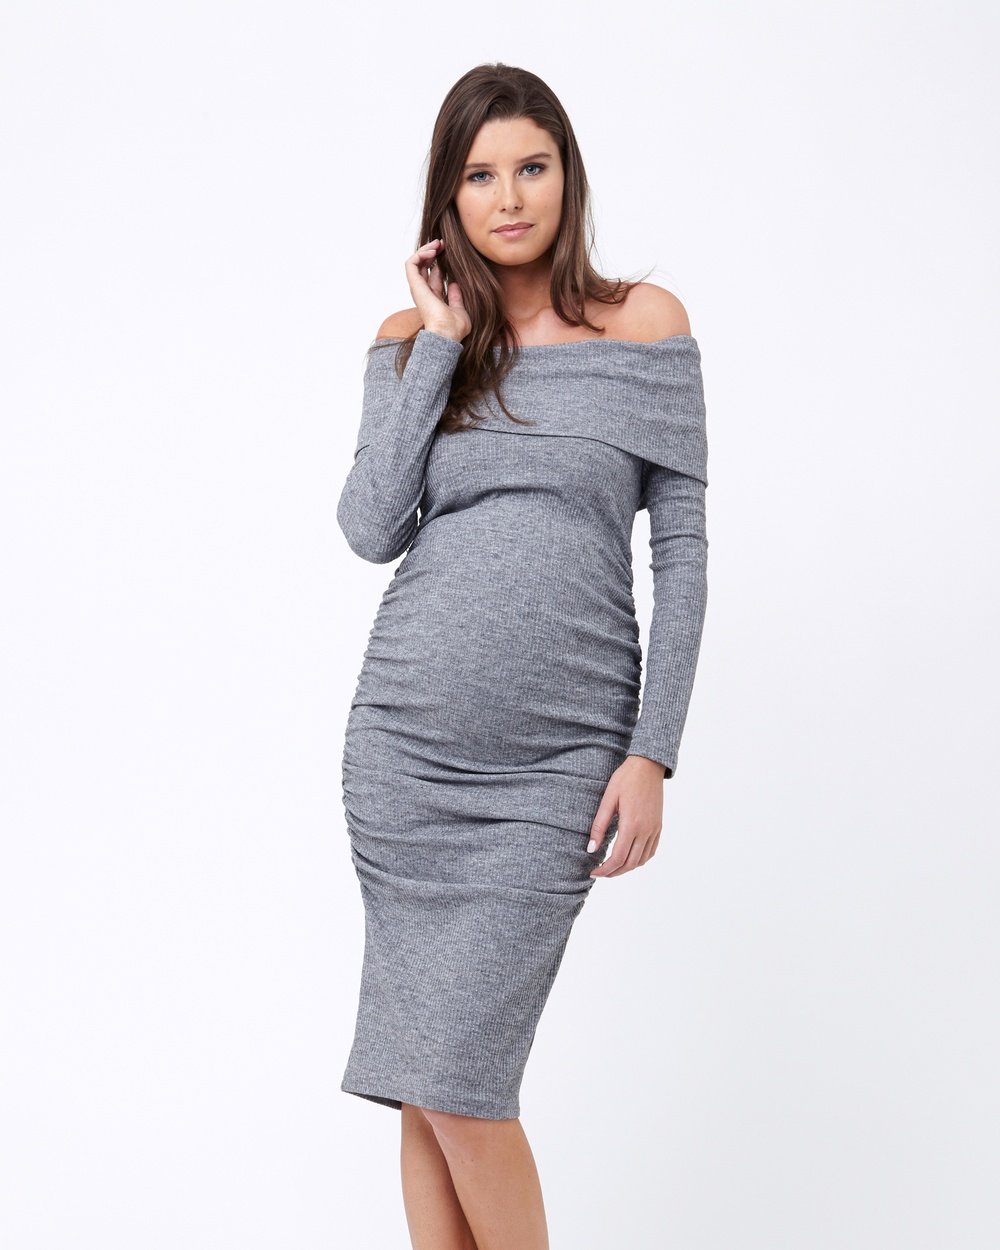 Ripe Maternity Bonnie Dress Dresses Grey Bonnie Dress